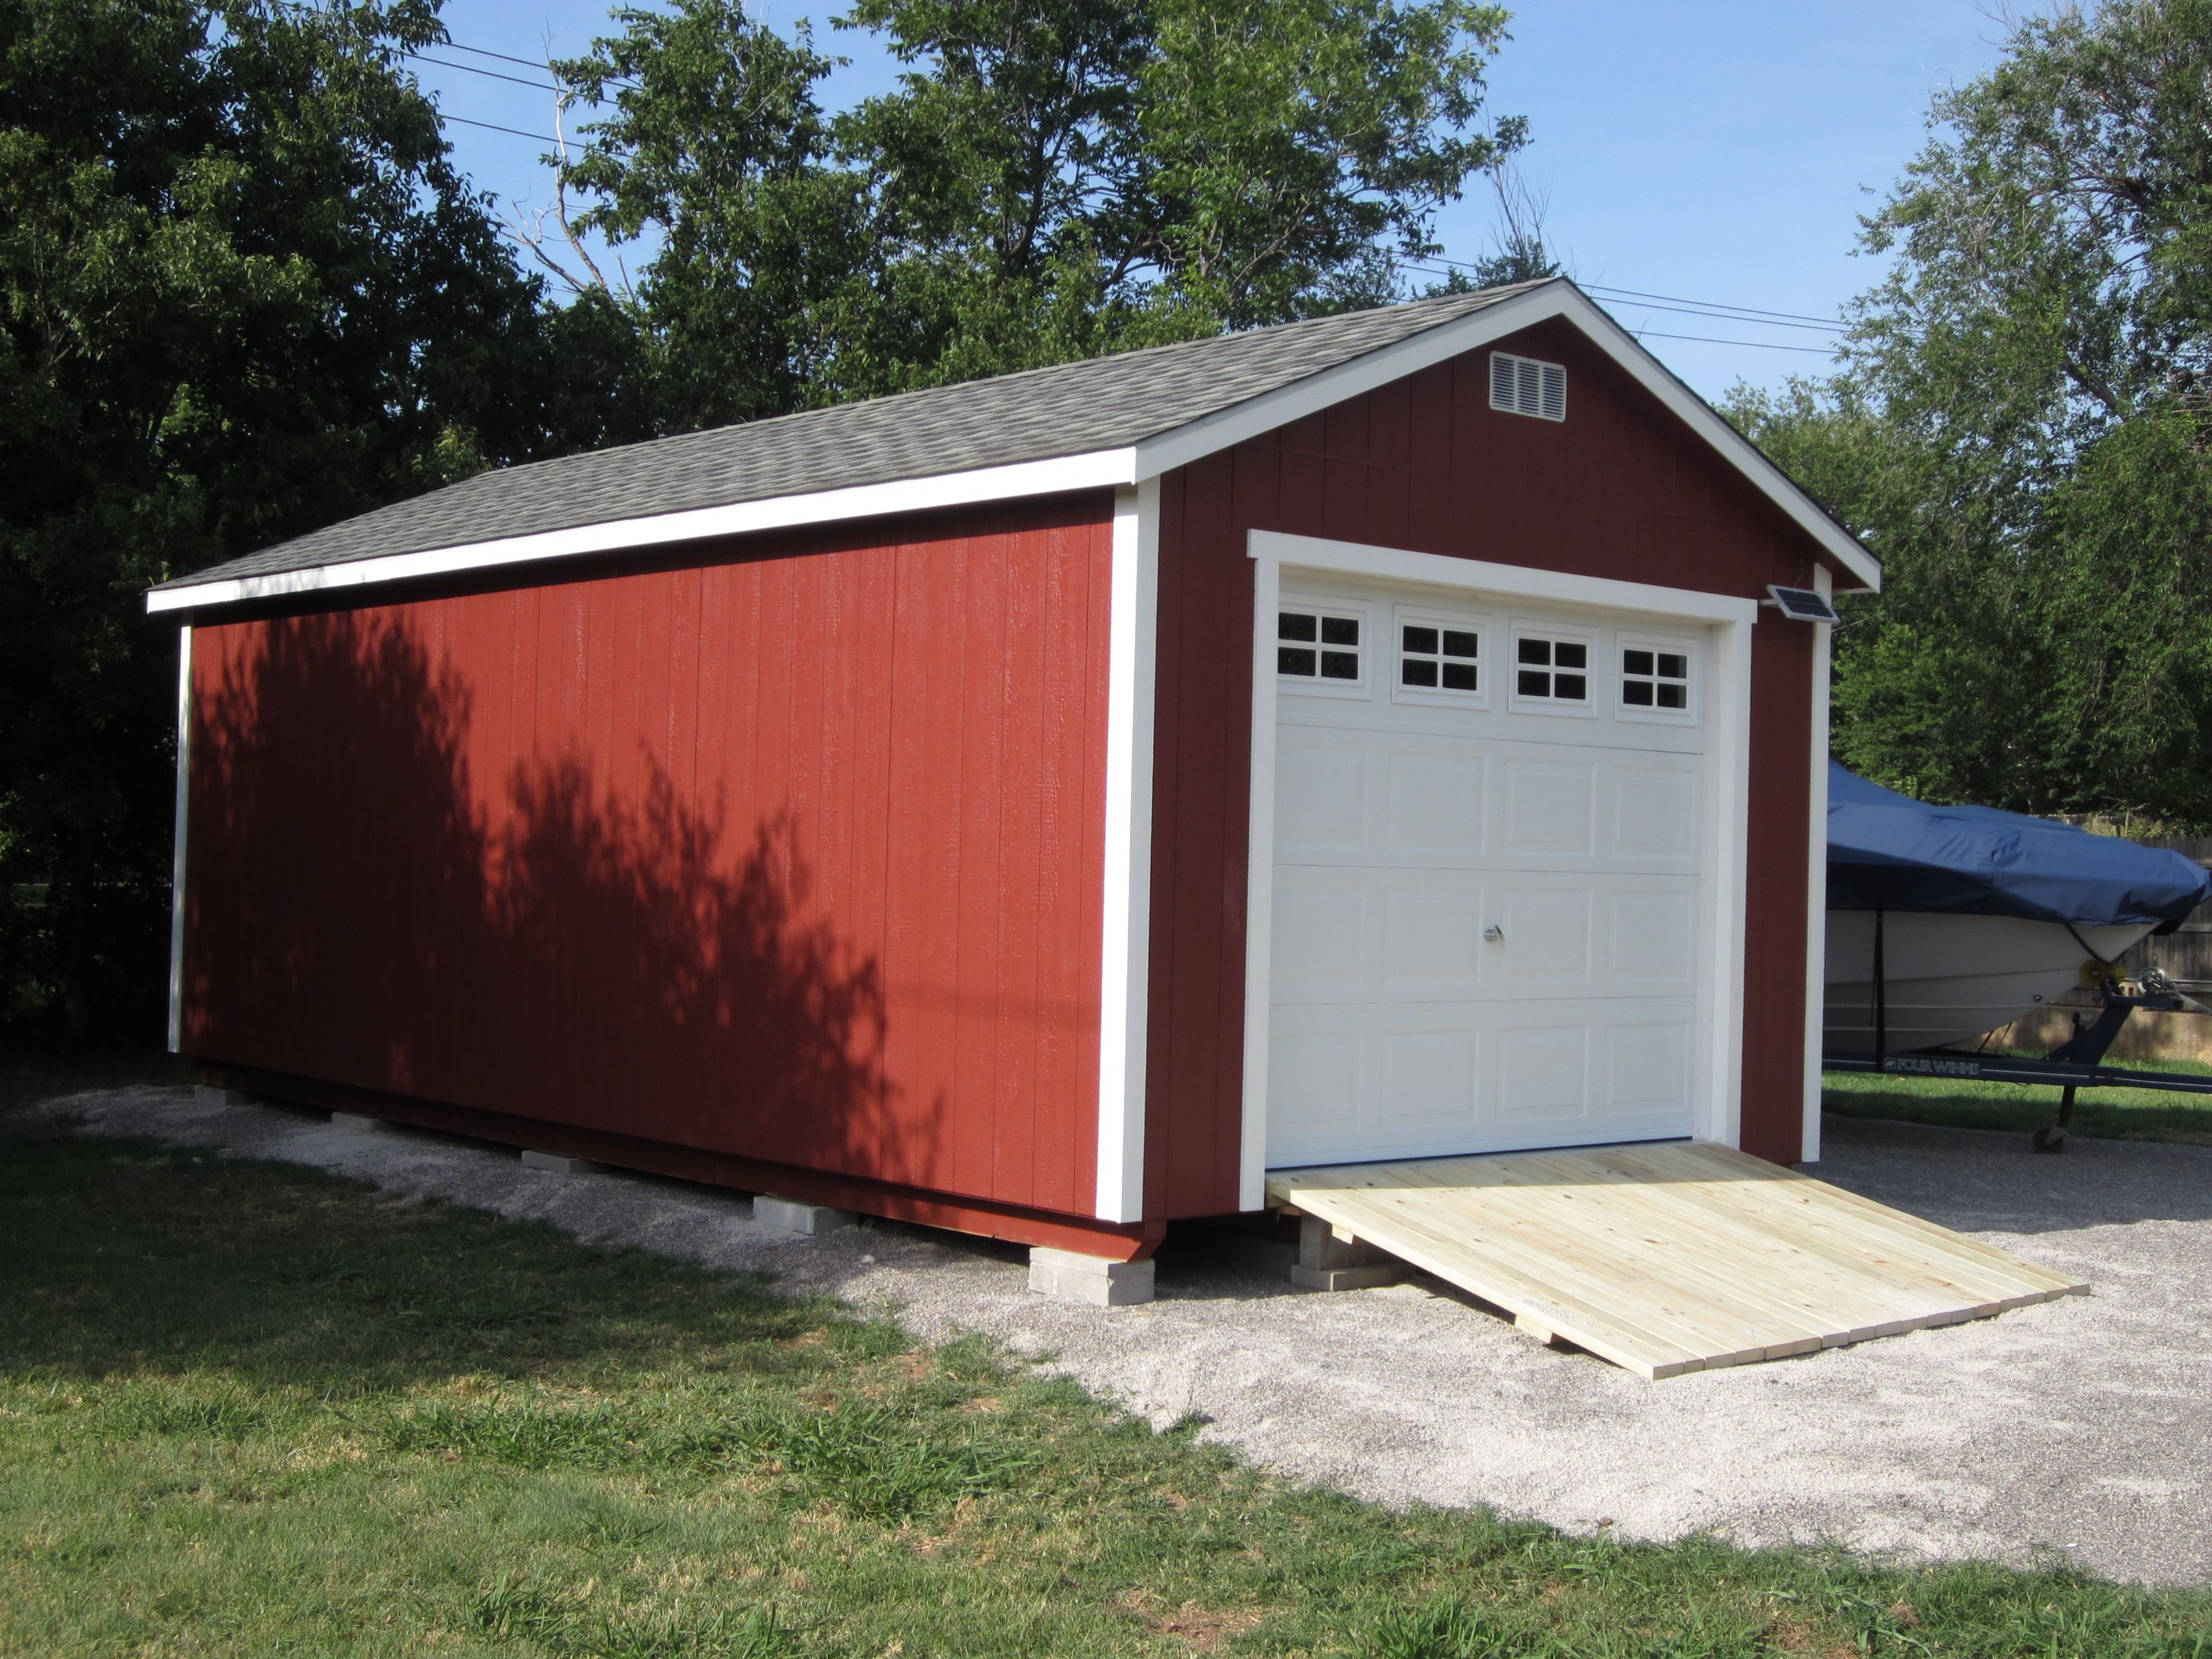 Portable garage. Portable metal garages  often made of steel  are a good choice for